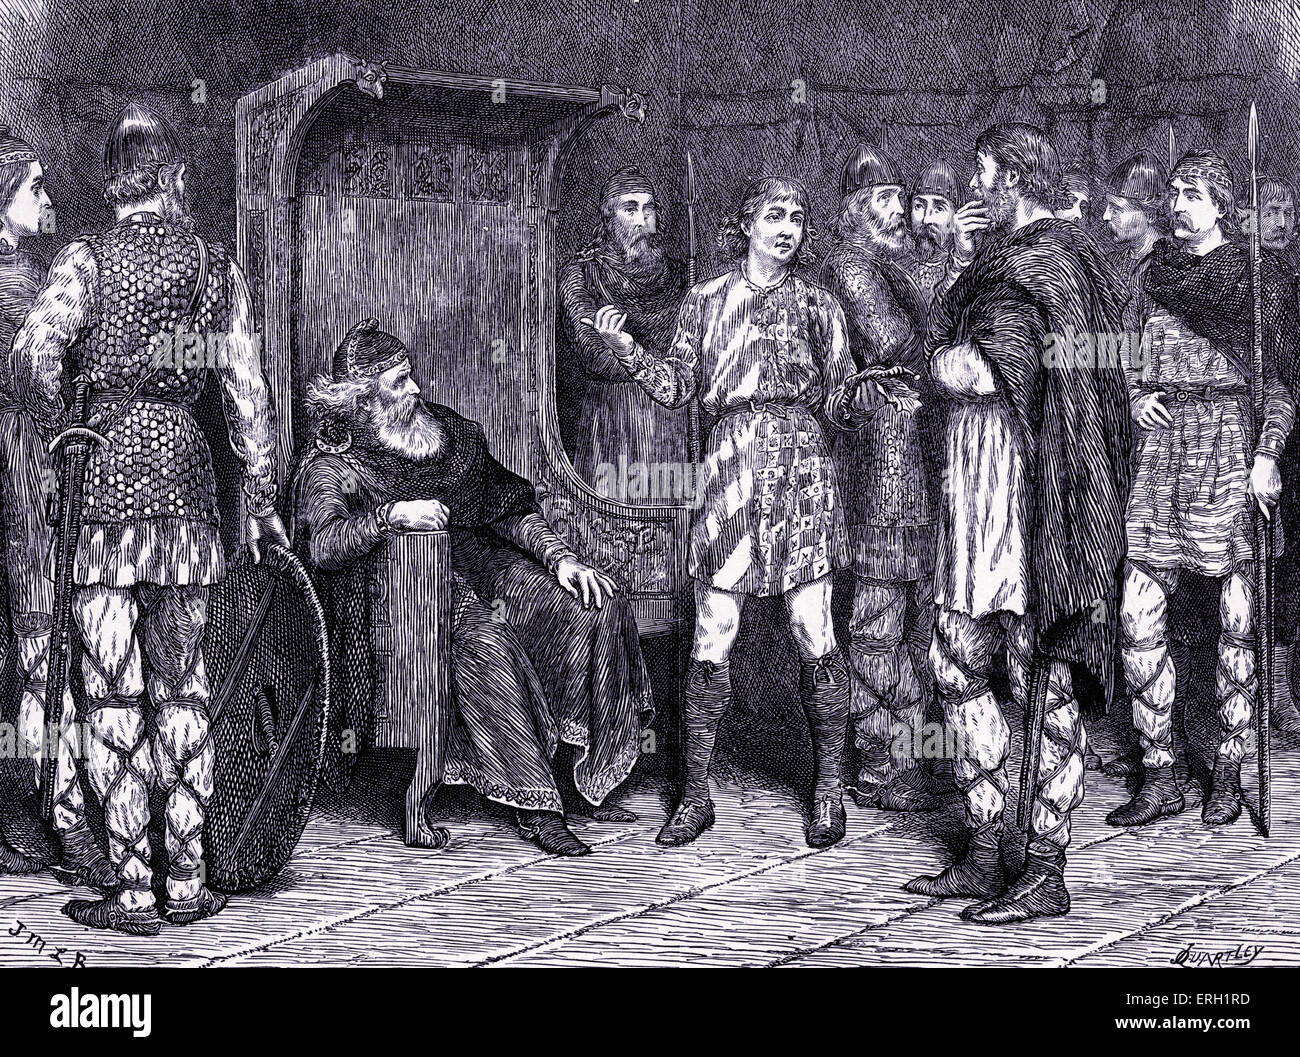 essay on macbeth act 1 scene 7 Hautboys play the stage is lit by torches a butler enters, and various servants carry utensils and dishes of food across the stage.